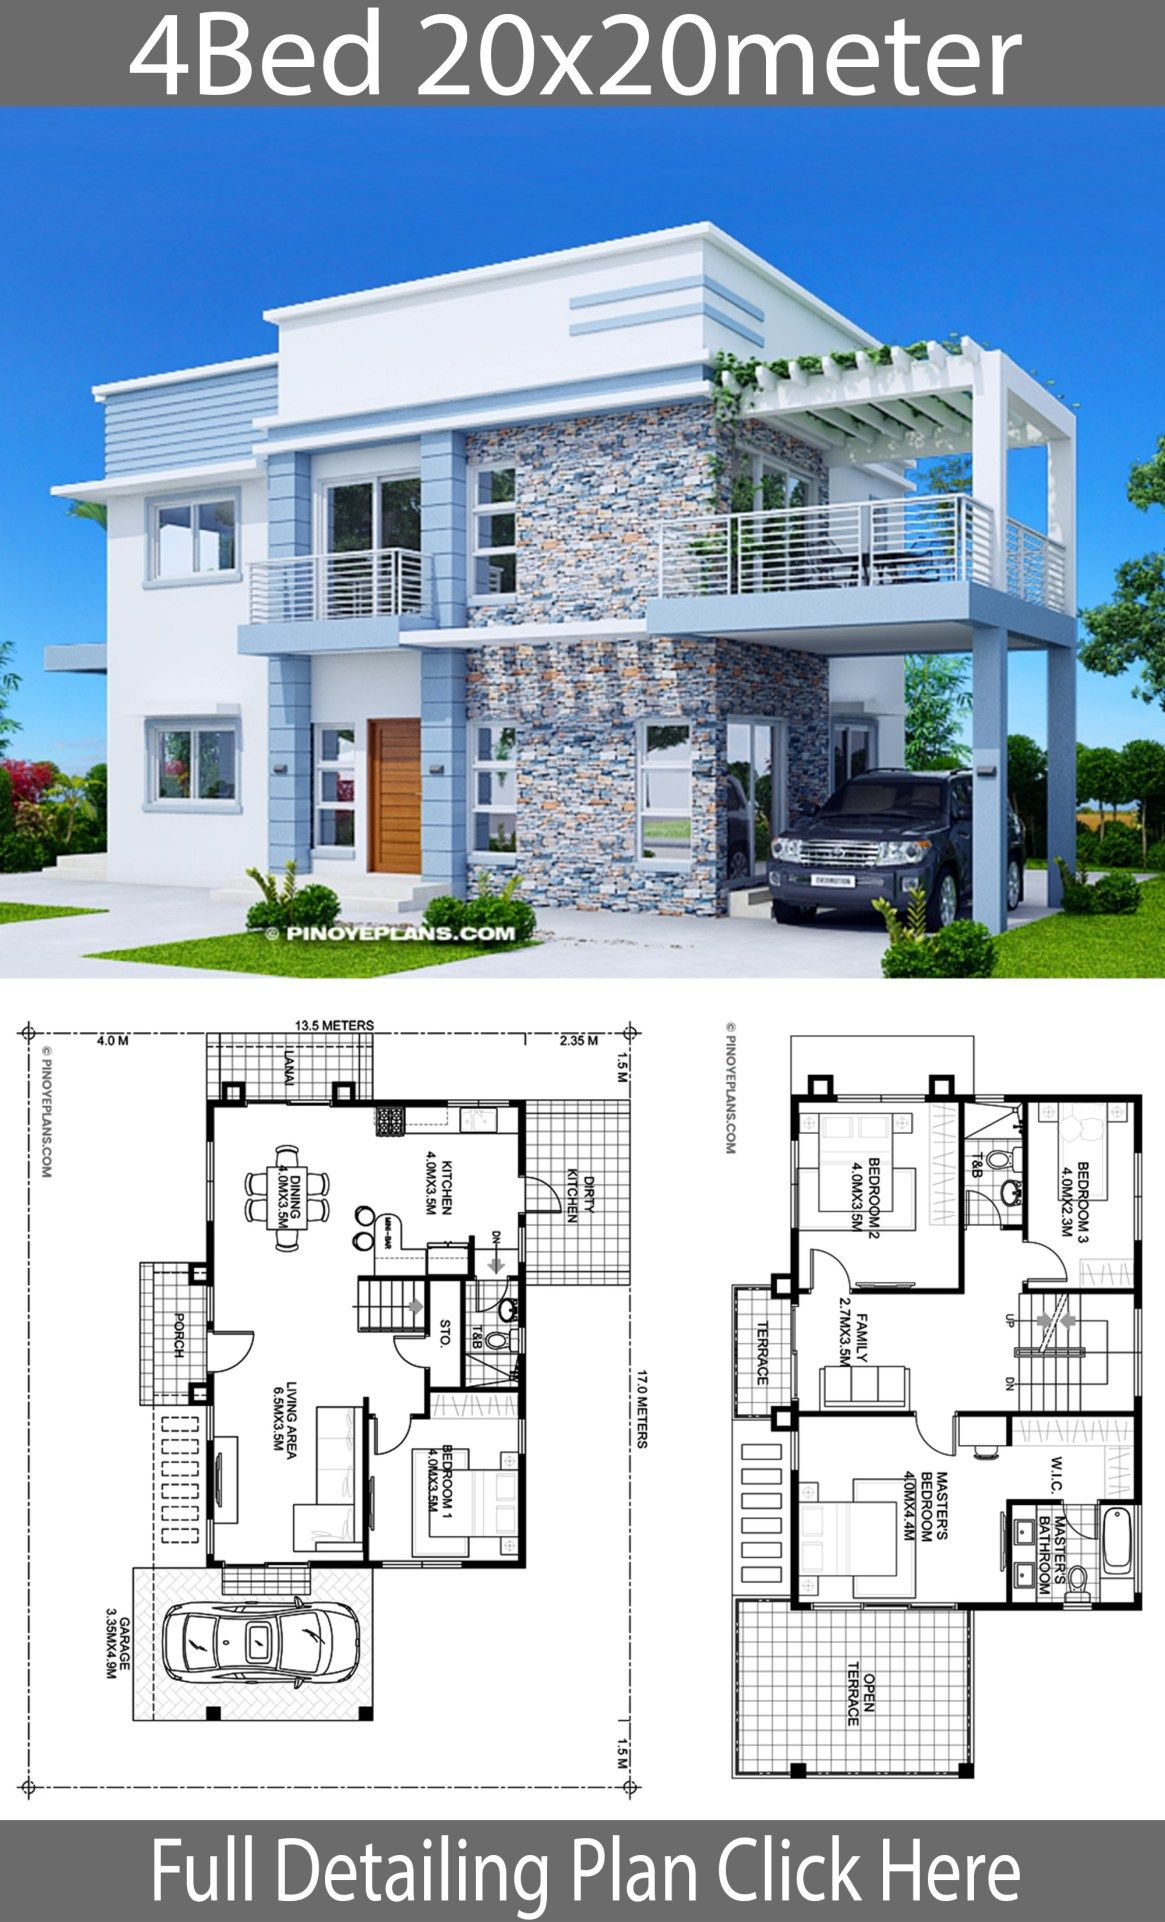 Home Design Plan 20x20m With 4 Bedrooms Model House Plan House Layout Plans House Plans